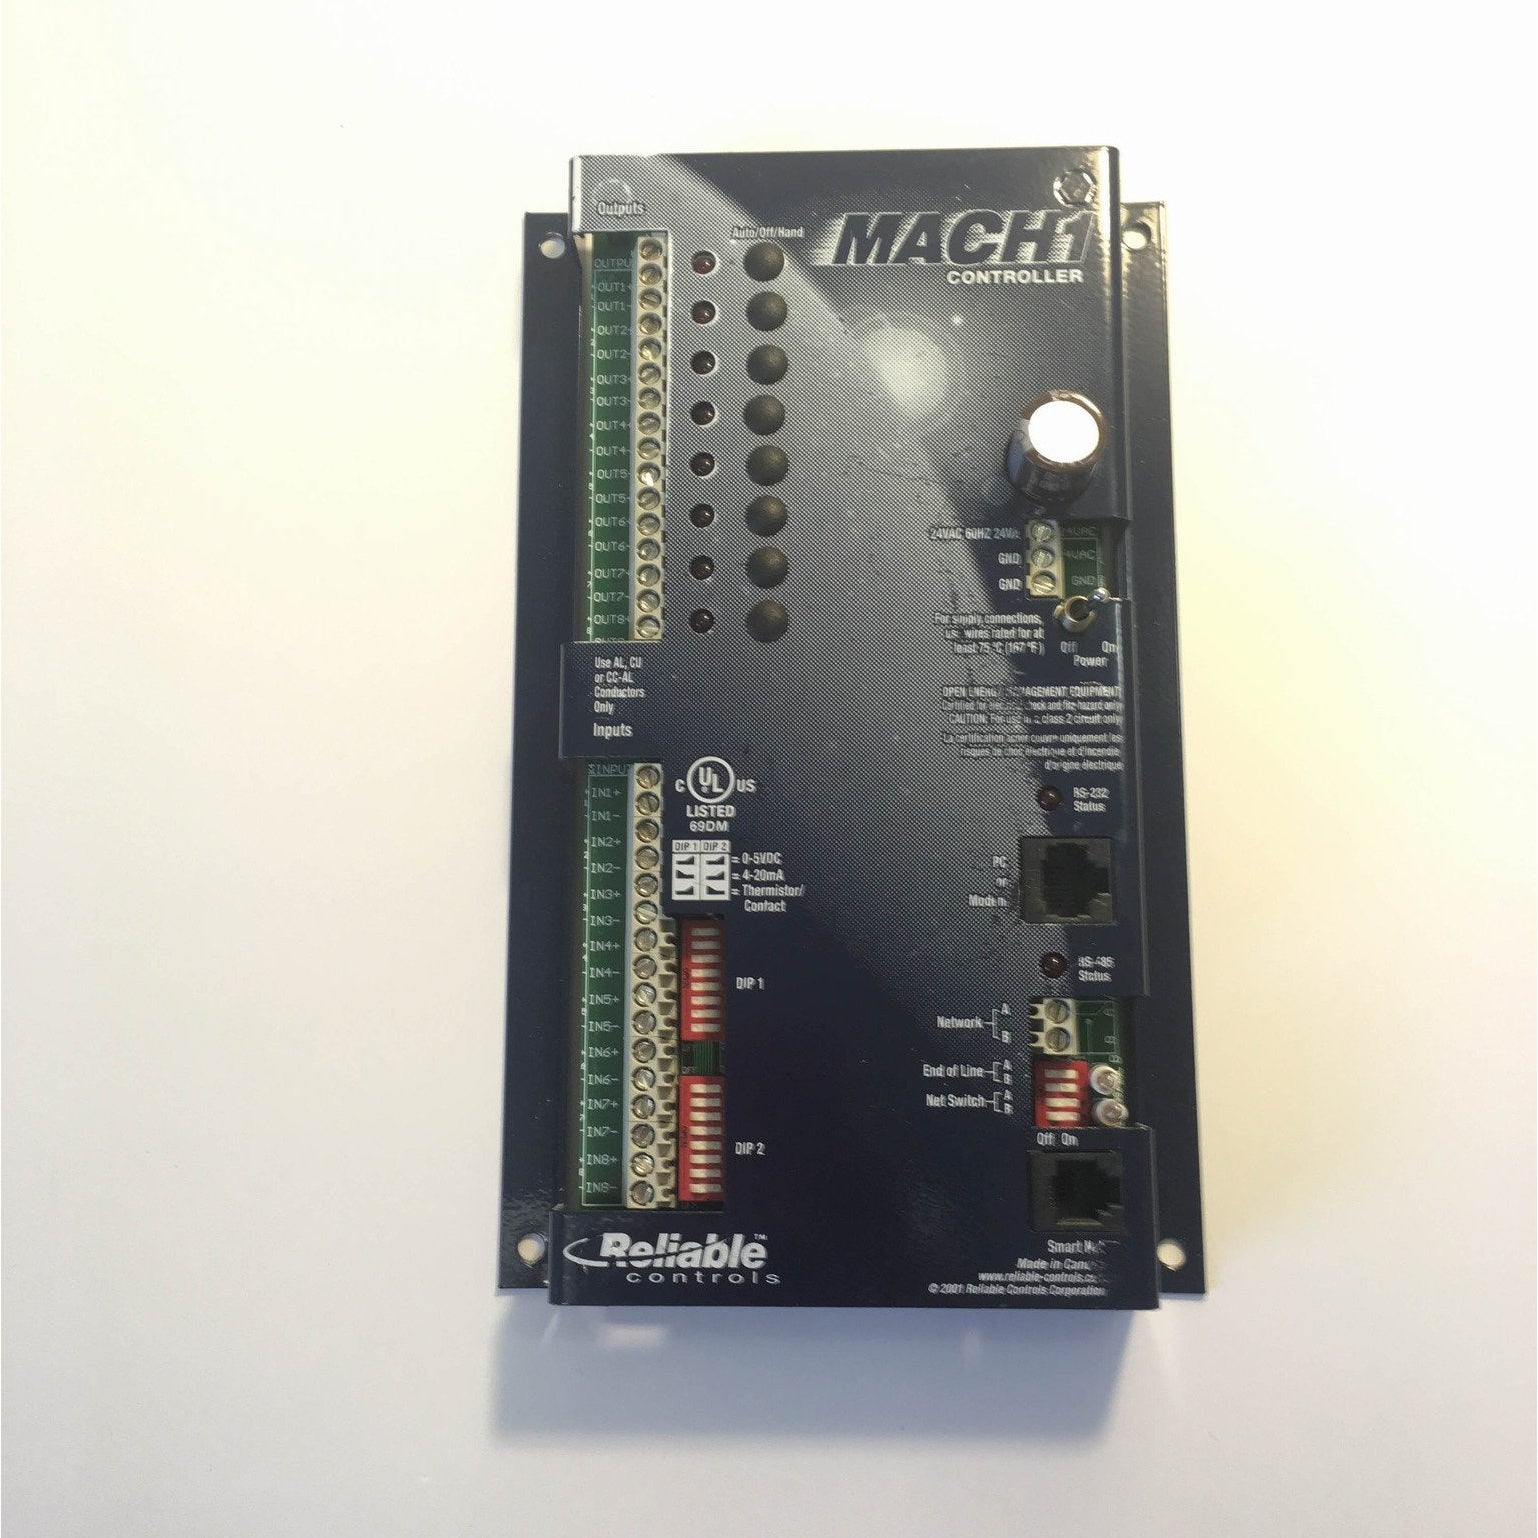 Reliable Controls Mach 1 Controller